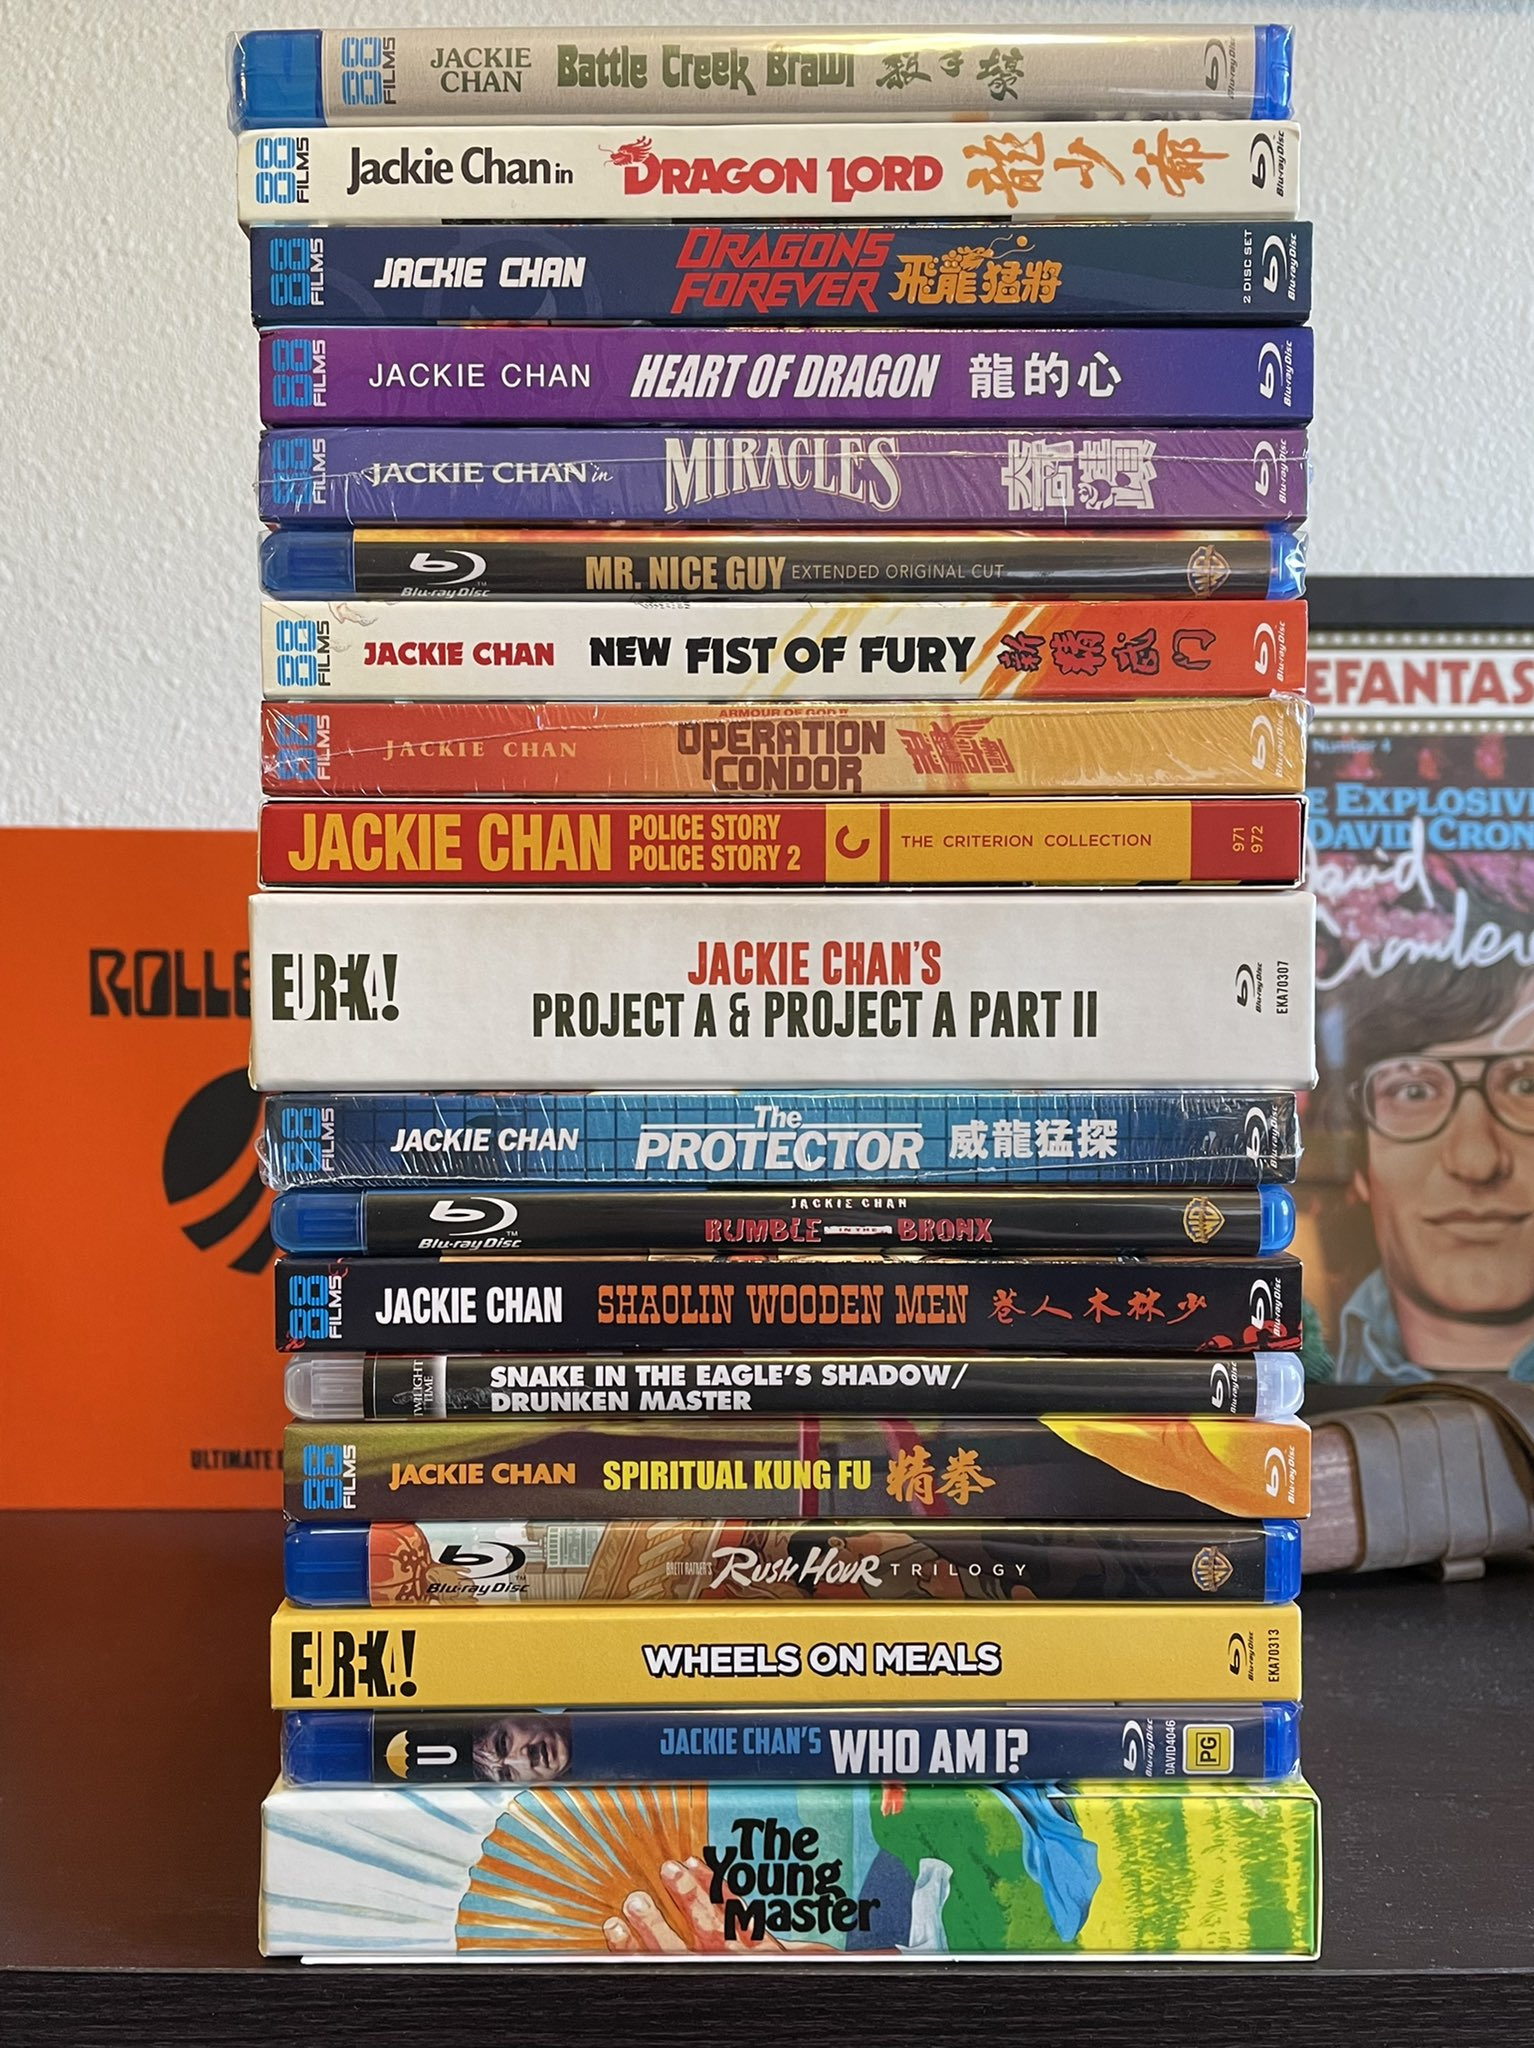 My # Jackie Chan physical media collection. Happy Birthday to the legend!